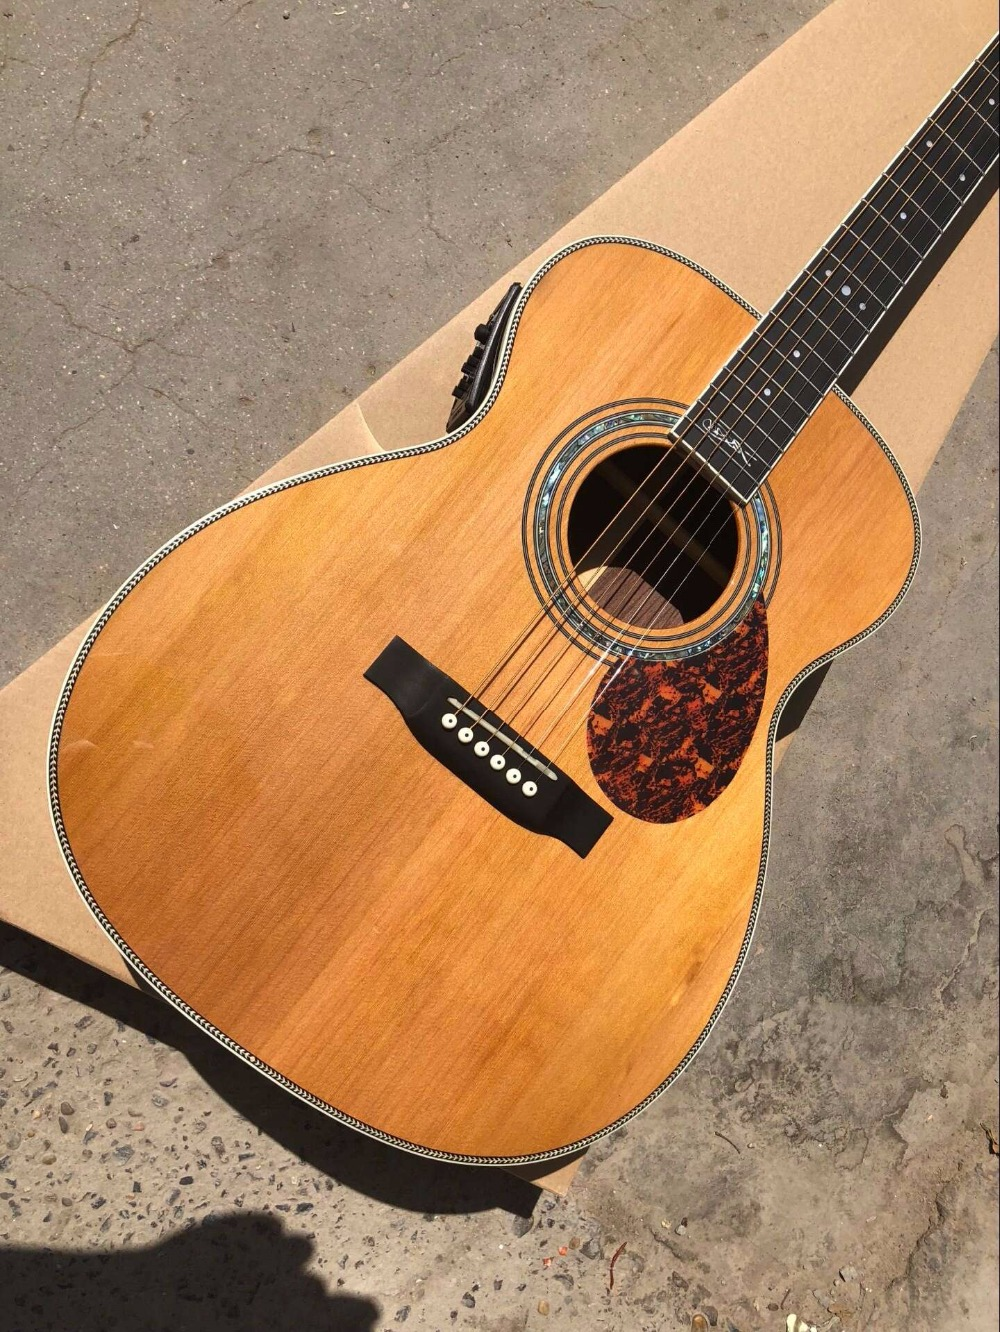 free shipping best quality OM guitars Ebony Fretboard OM body signature acoustic electric Guitar free shipping telec electric guitar natural tl guitar maple body and main bearing guitars oem guitarra eletrica telecaster